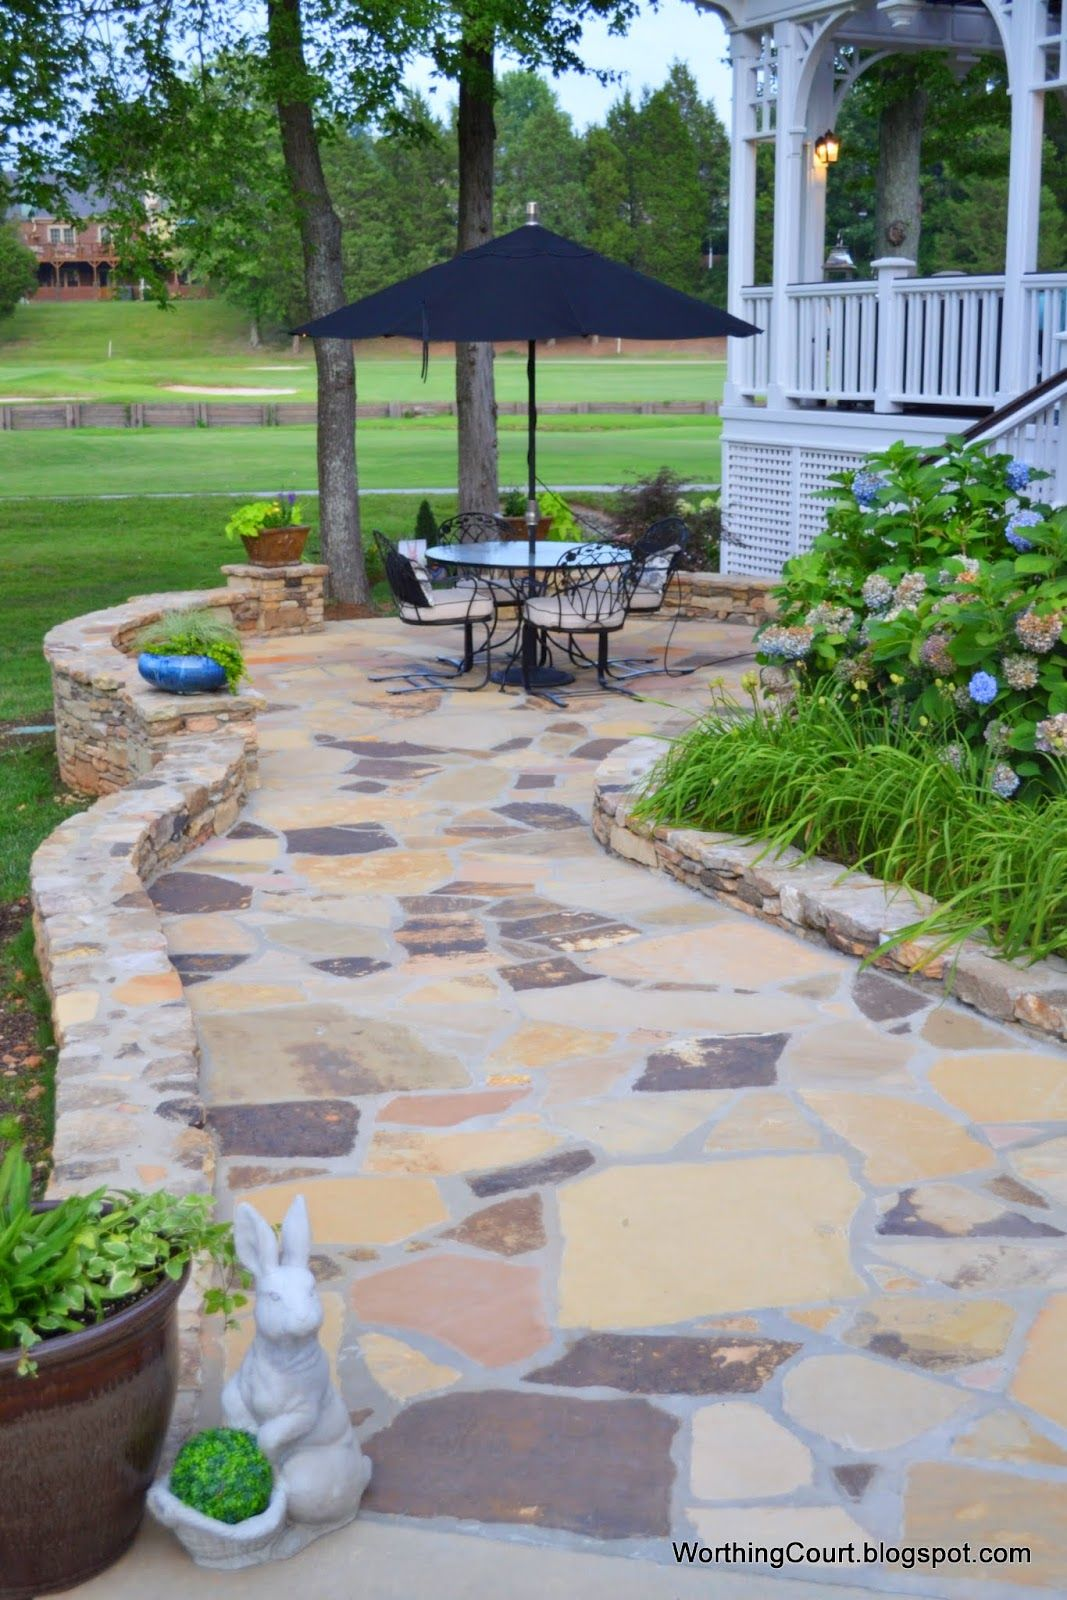 Backyard Creations Patio Awnings: Favorite Places & Spaces